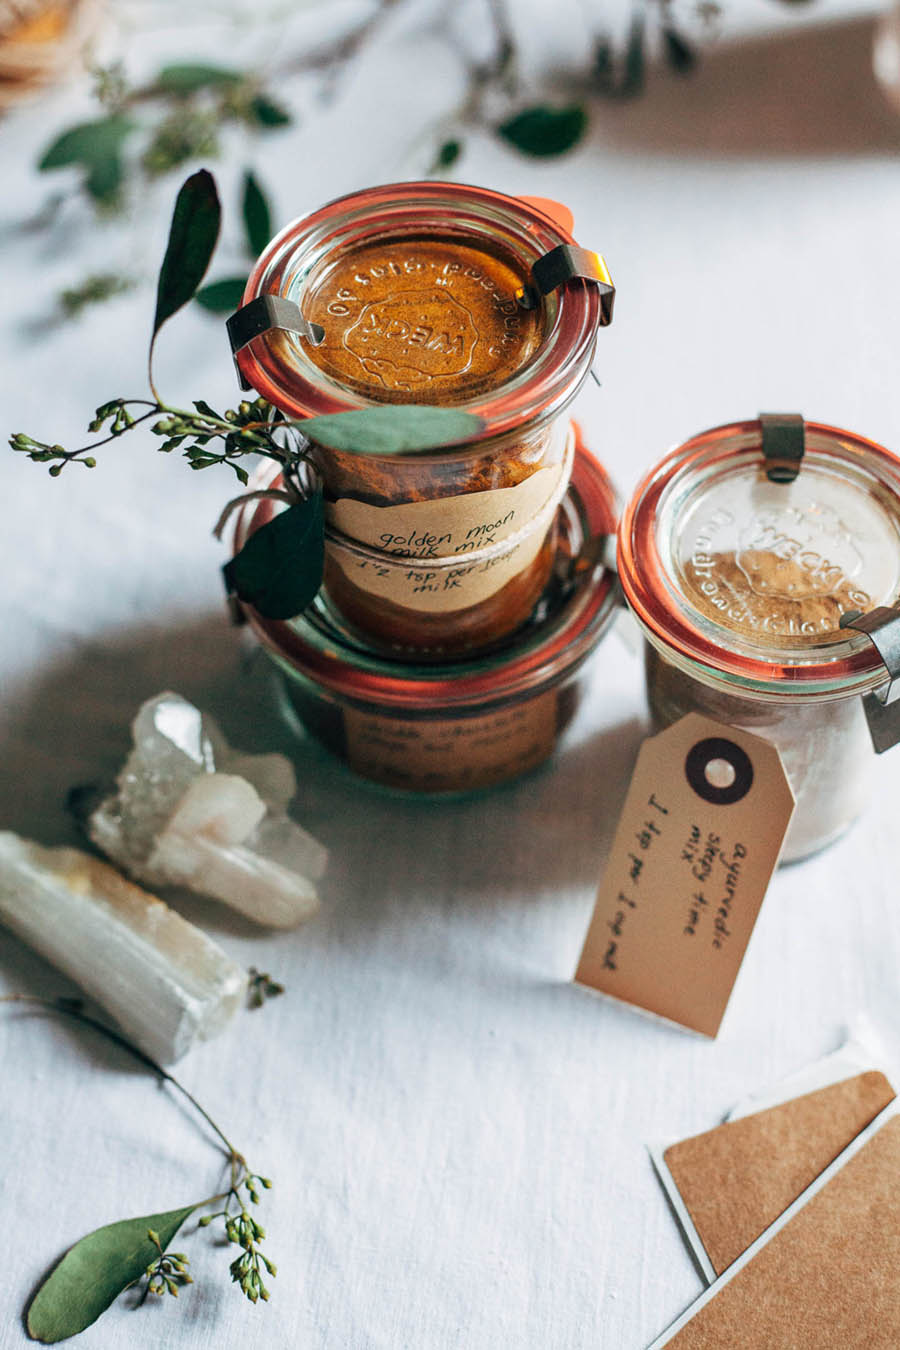 Three jars of homemade tea spices sitting on a table with rustic garnishes.